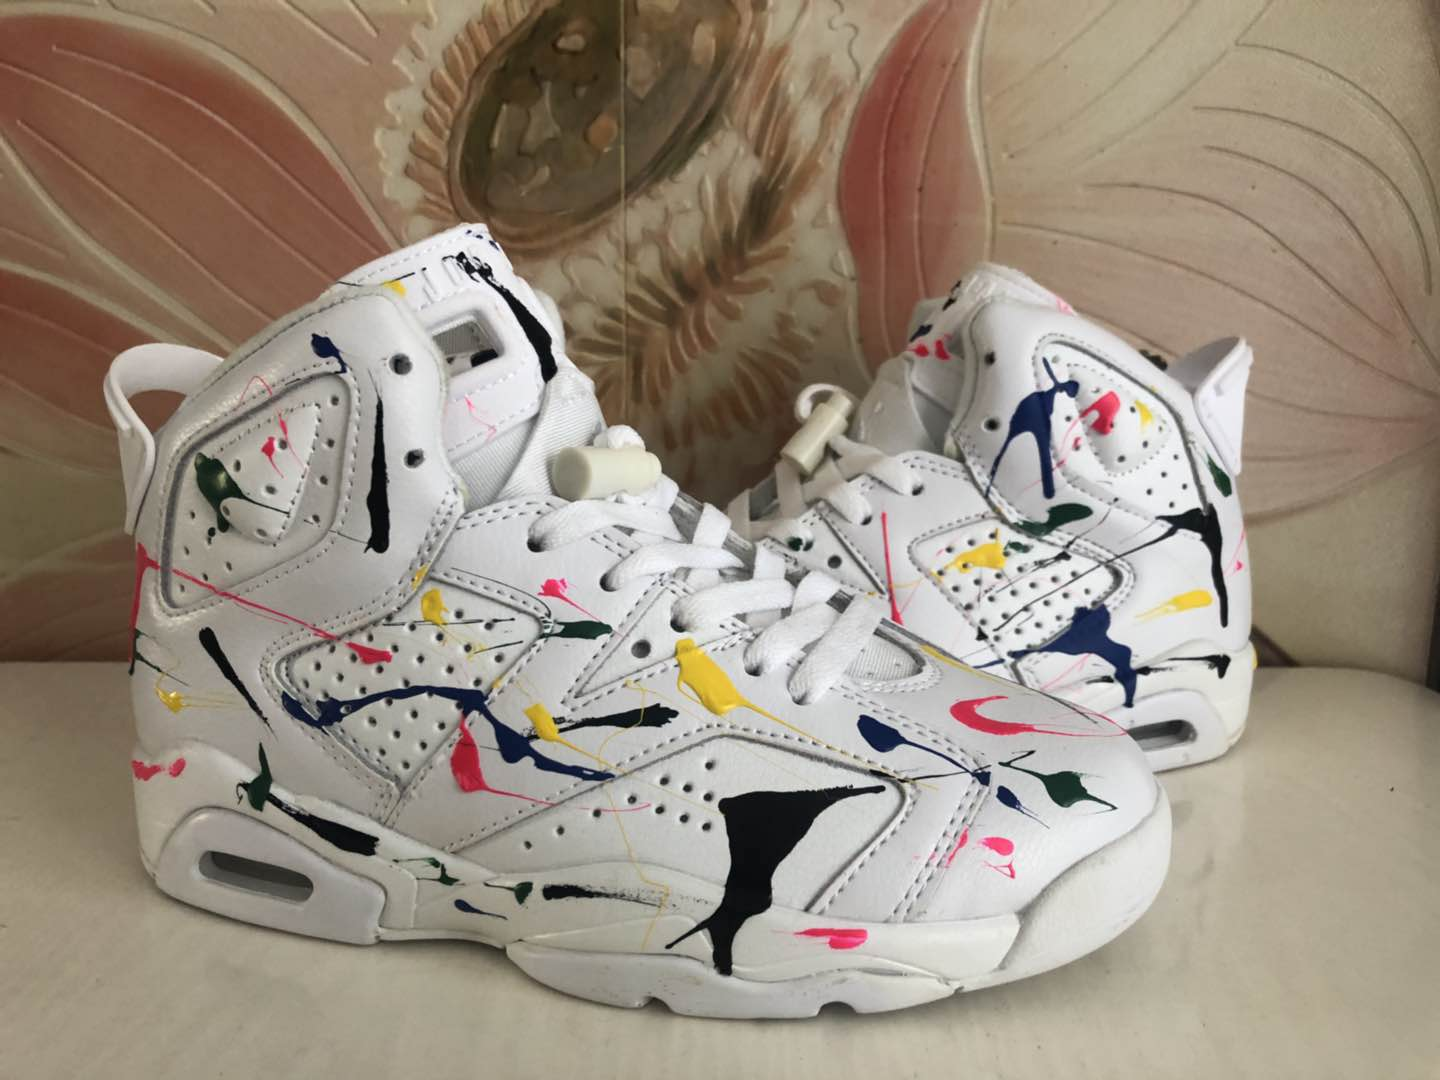 Air Jordan 6 GS Graffiti White Colorful Shoes